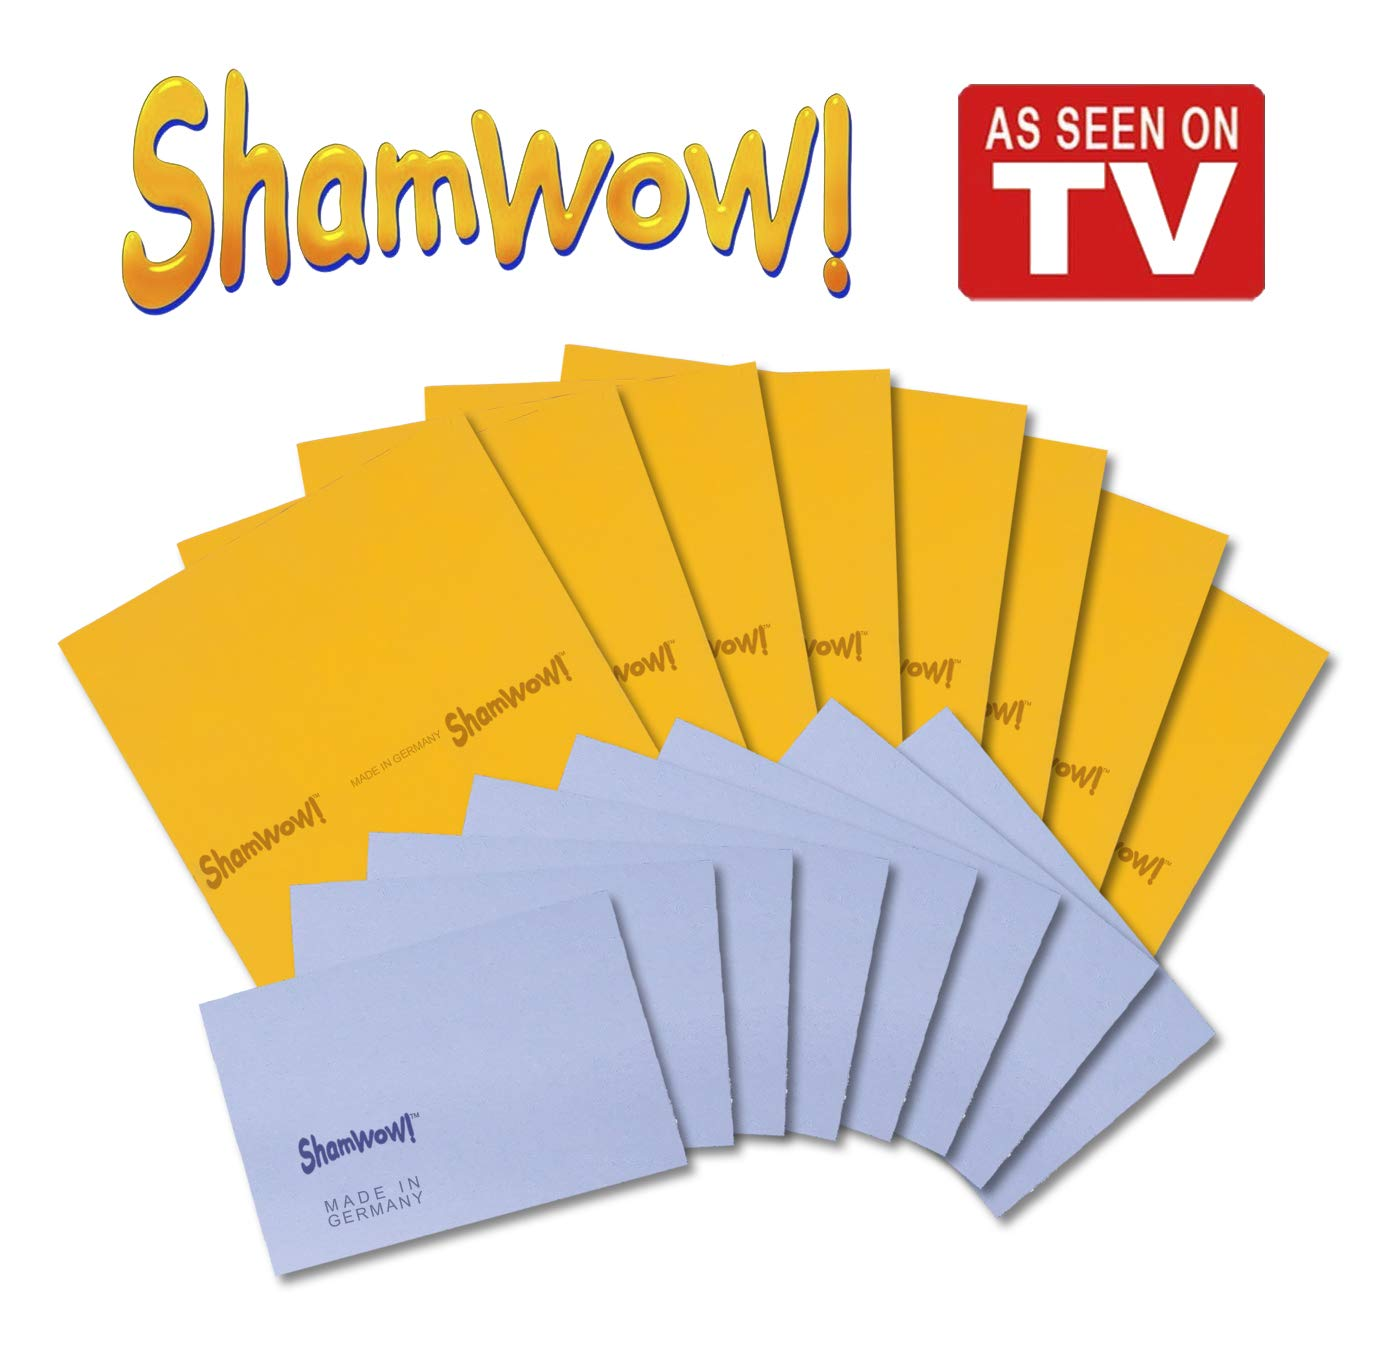 The Original Shamwow - Super Absorbent Multi-Purpose Cleaning Shammy (Chamois) Towel Cloth, Machine Washable, Will Not Scratch (16 Pack: 8 Large Orange and 8 Small Blue)